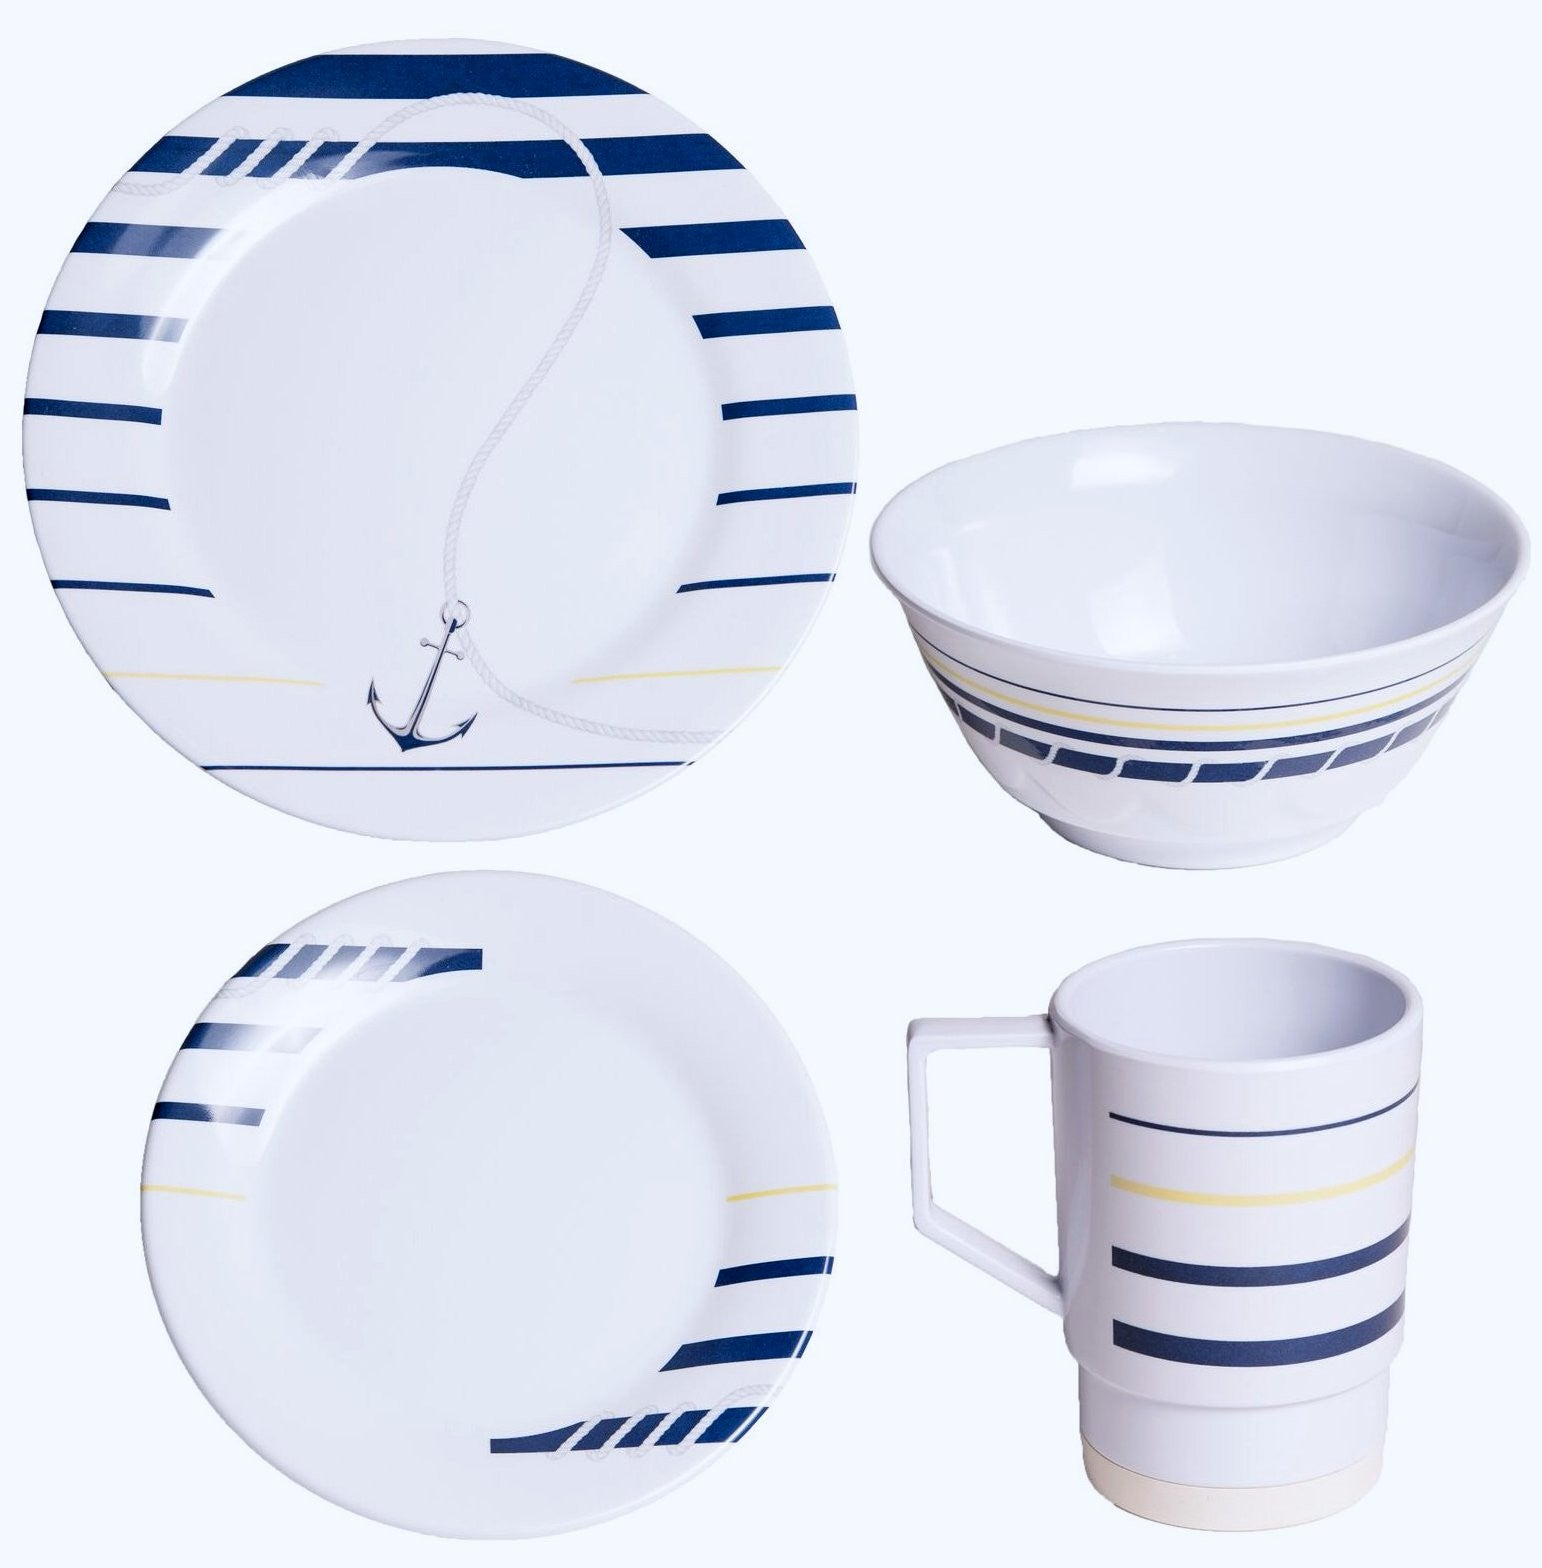 Non-Skid Cannes Stripe Melamine Dinnerware  sc 1 st  Nautical Luxuries & Non-Skid Cannes Stripe Melamine Dinnerware - Nautical Luxuries